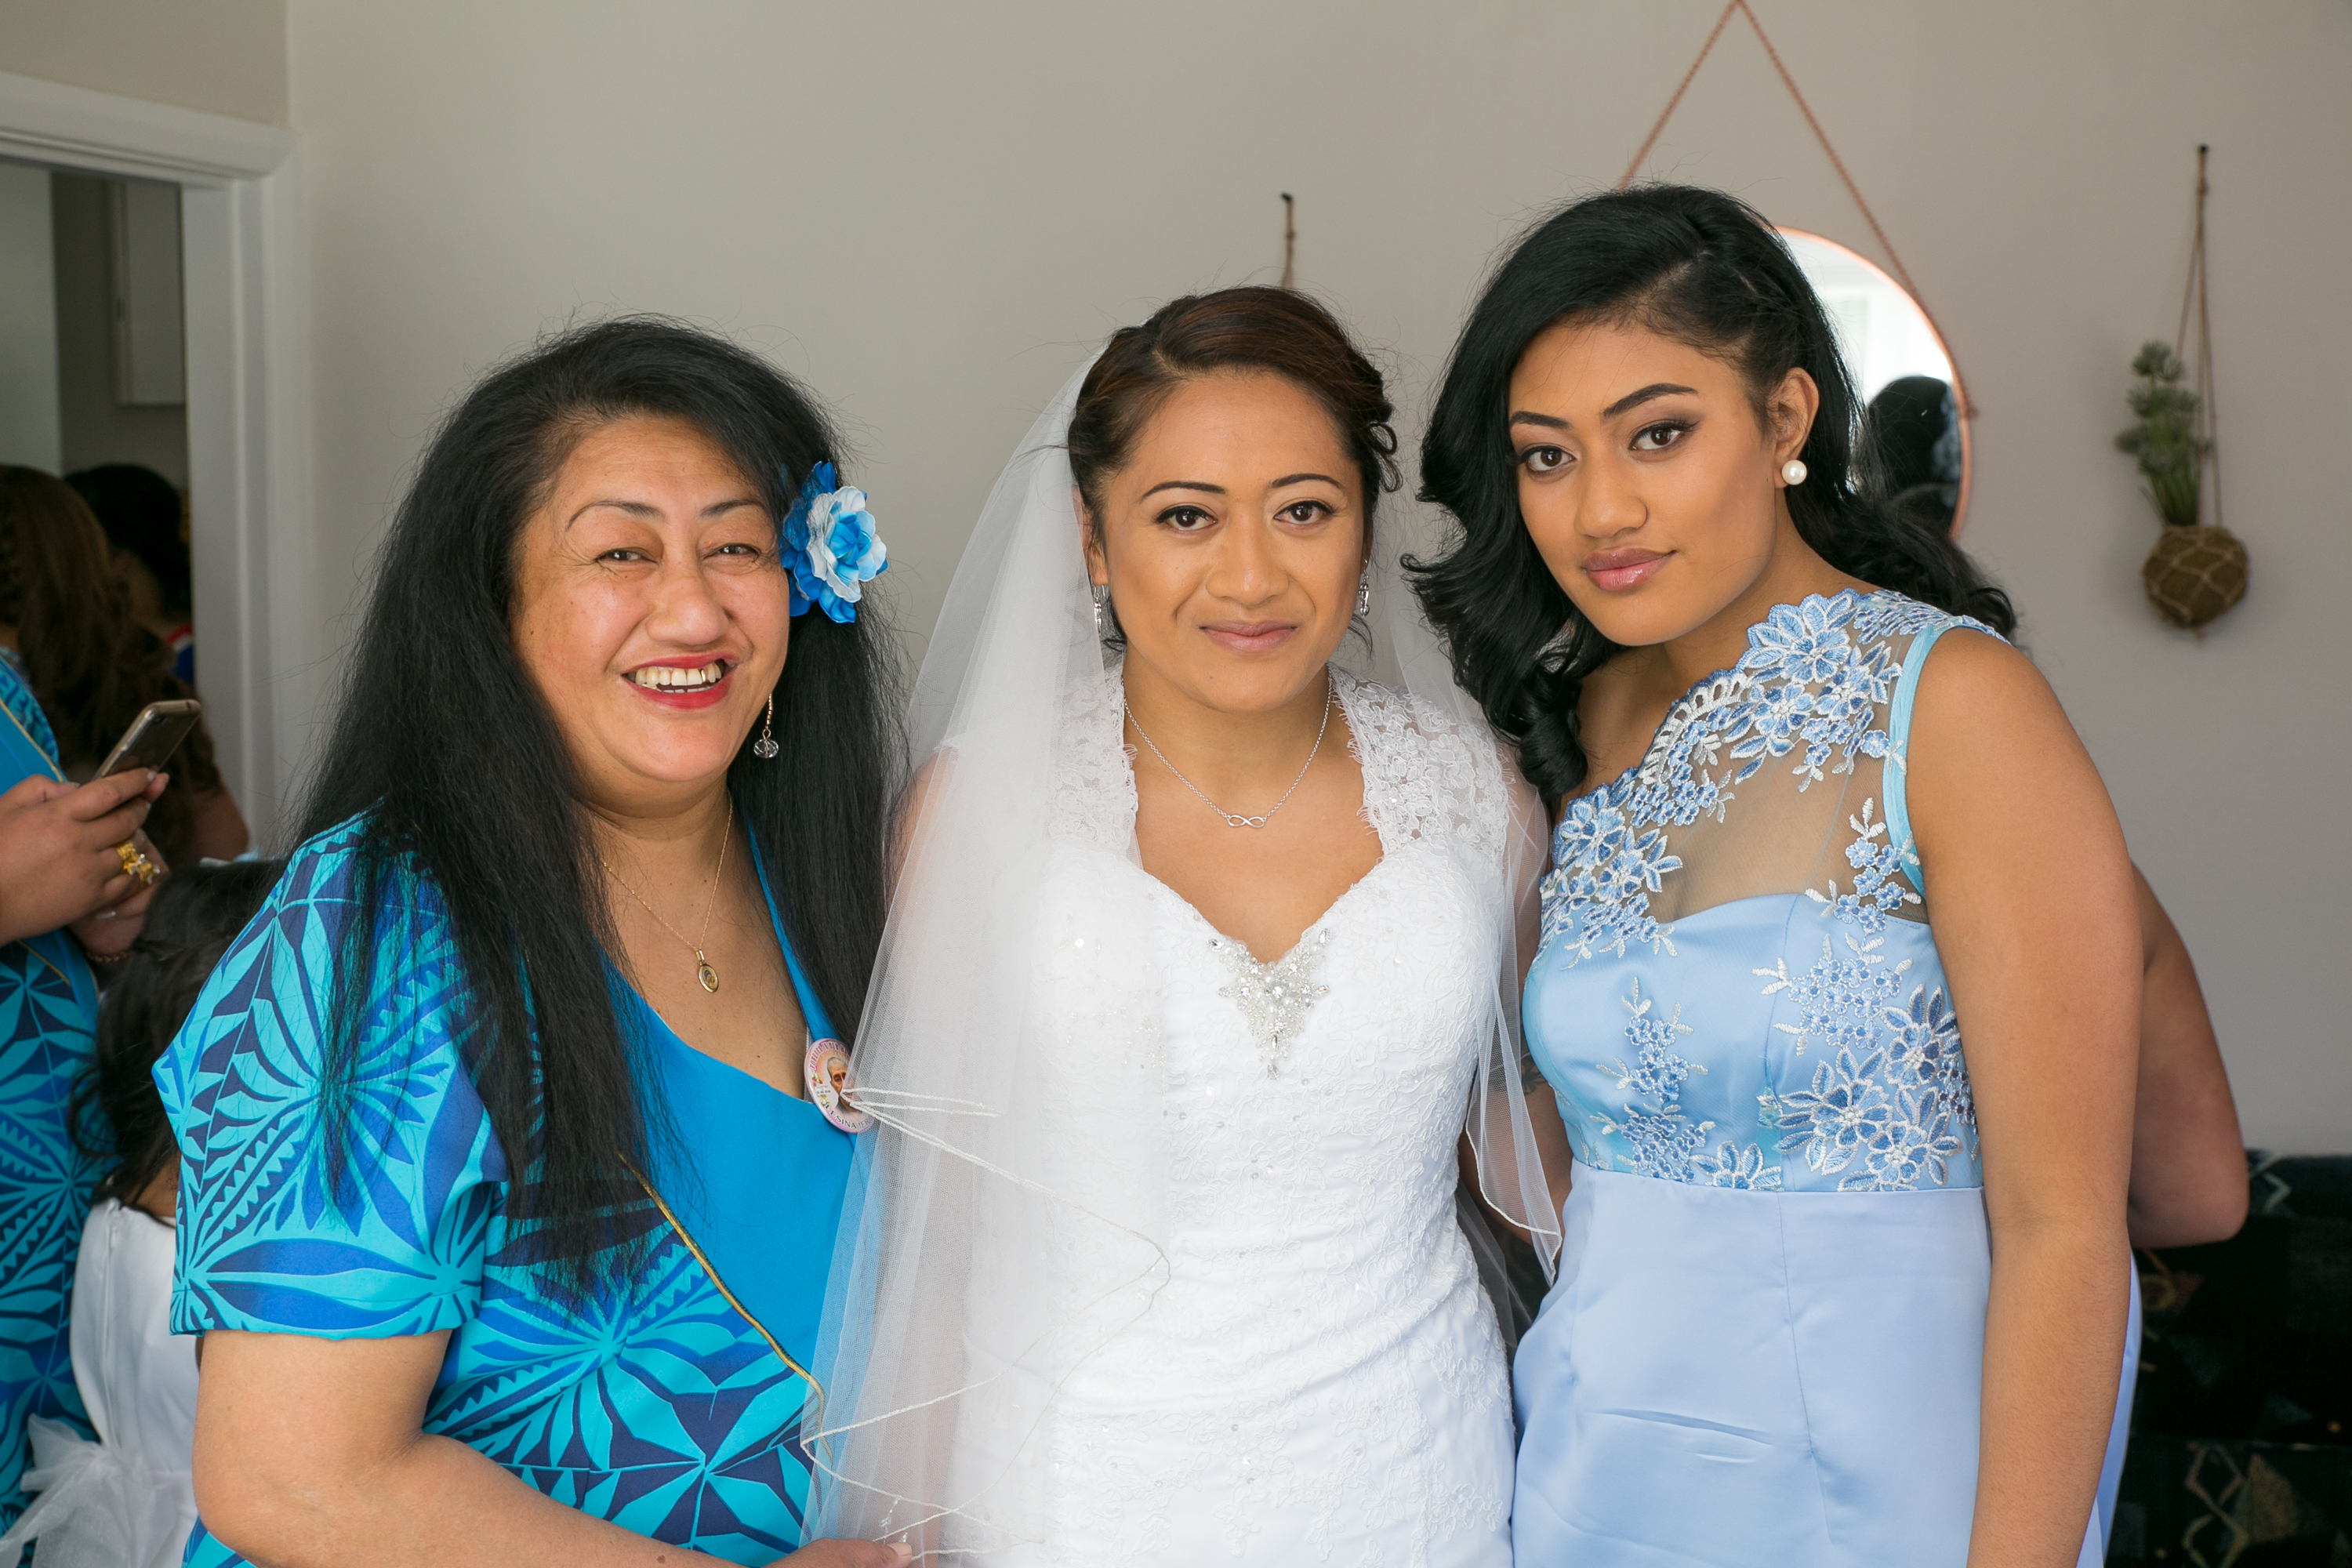 Samoan wedding bride